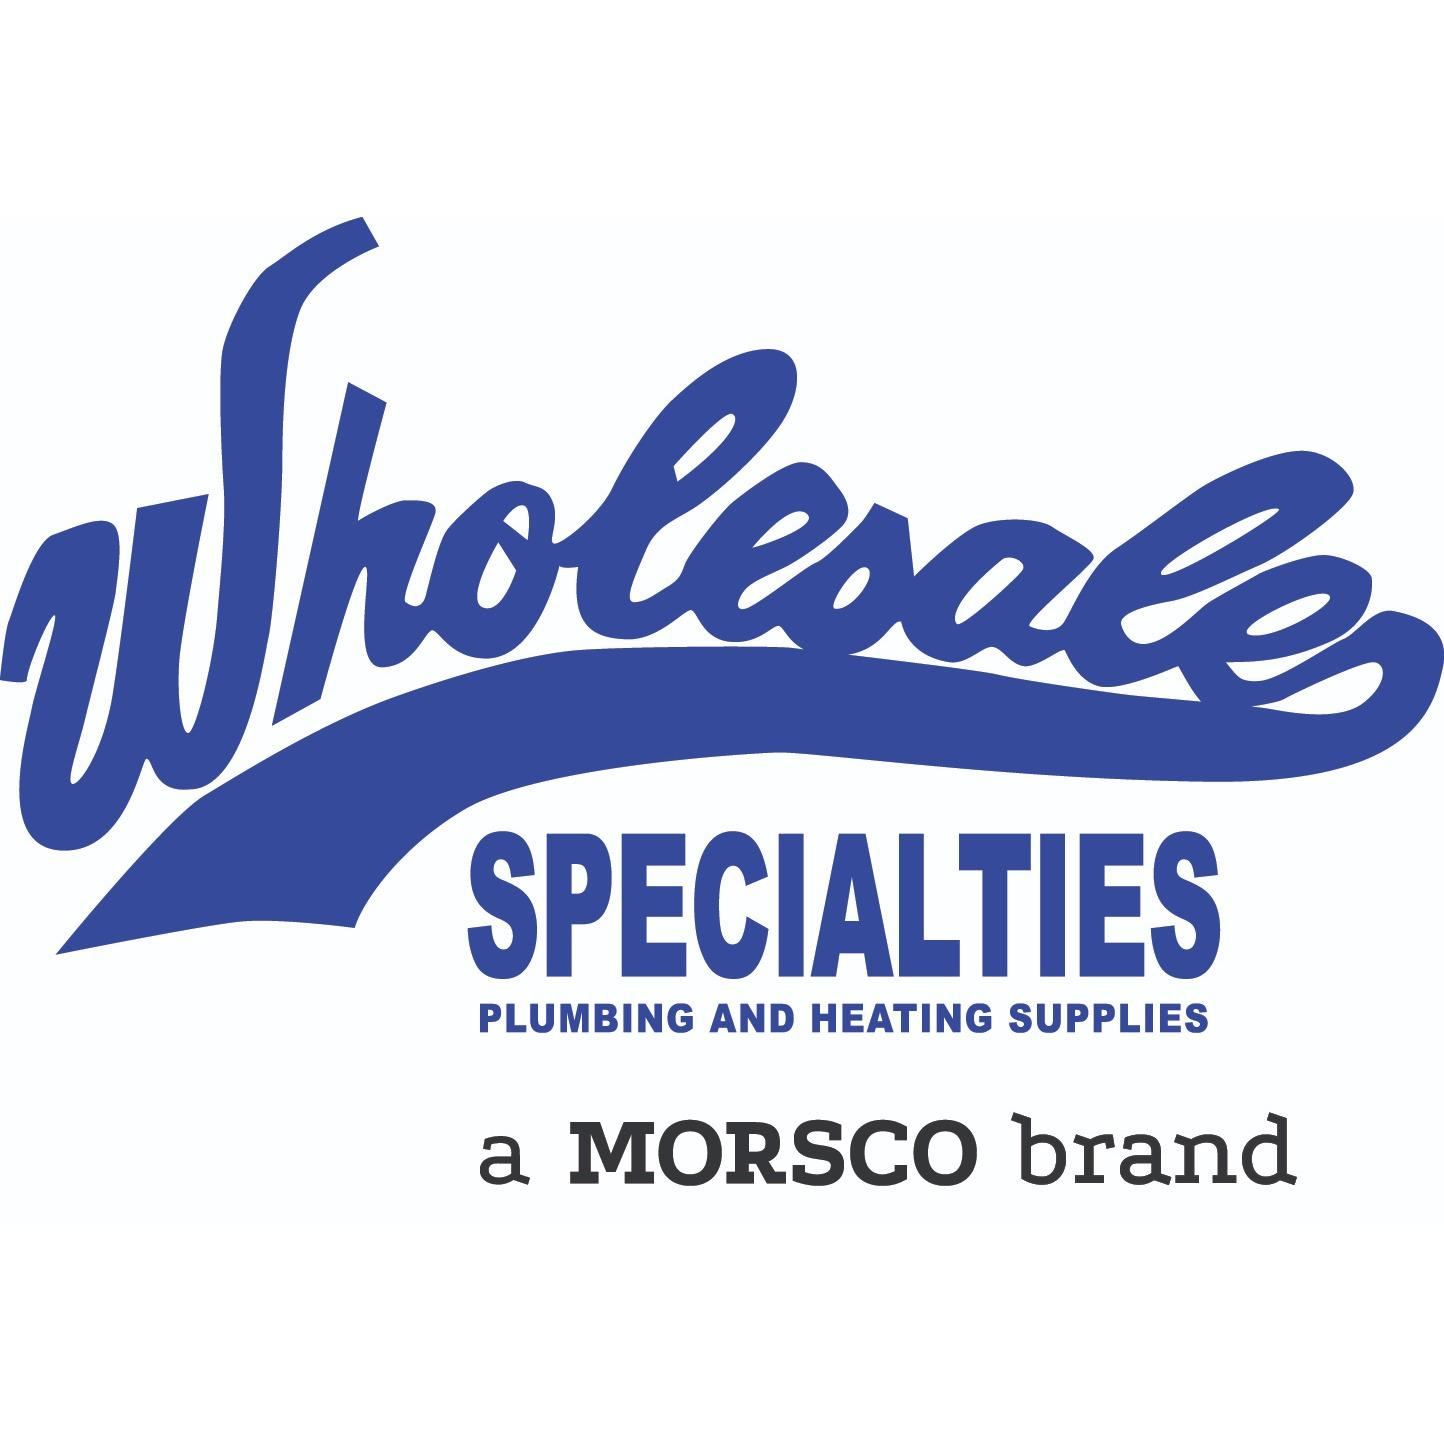 Wholesale Specialties